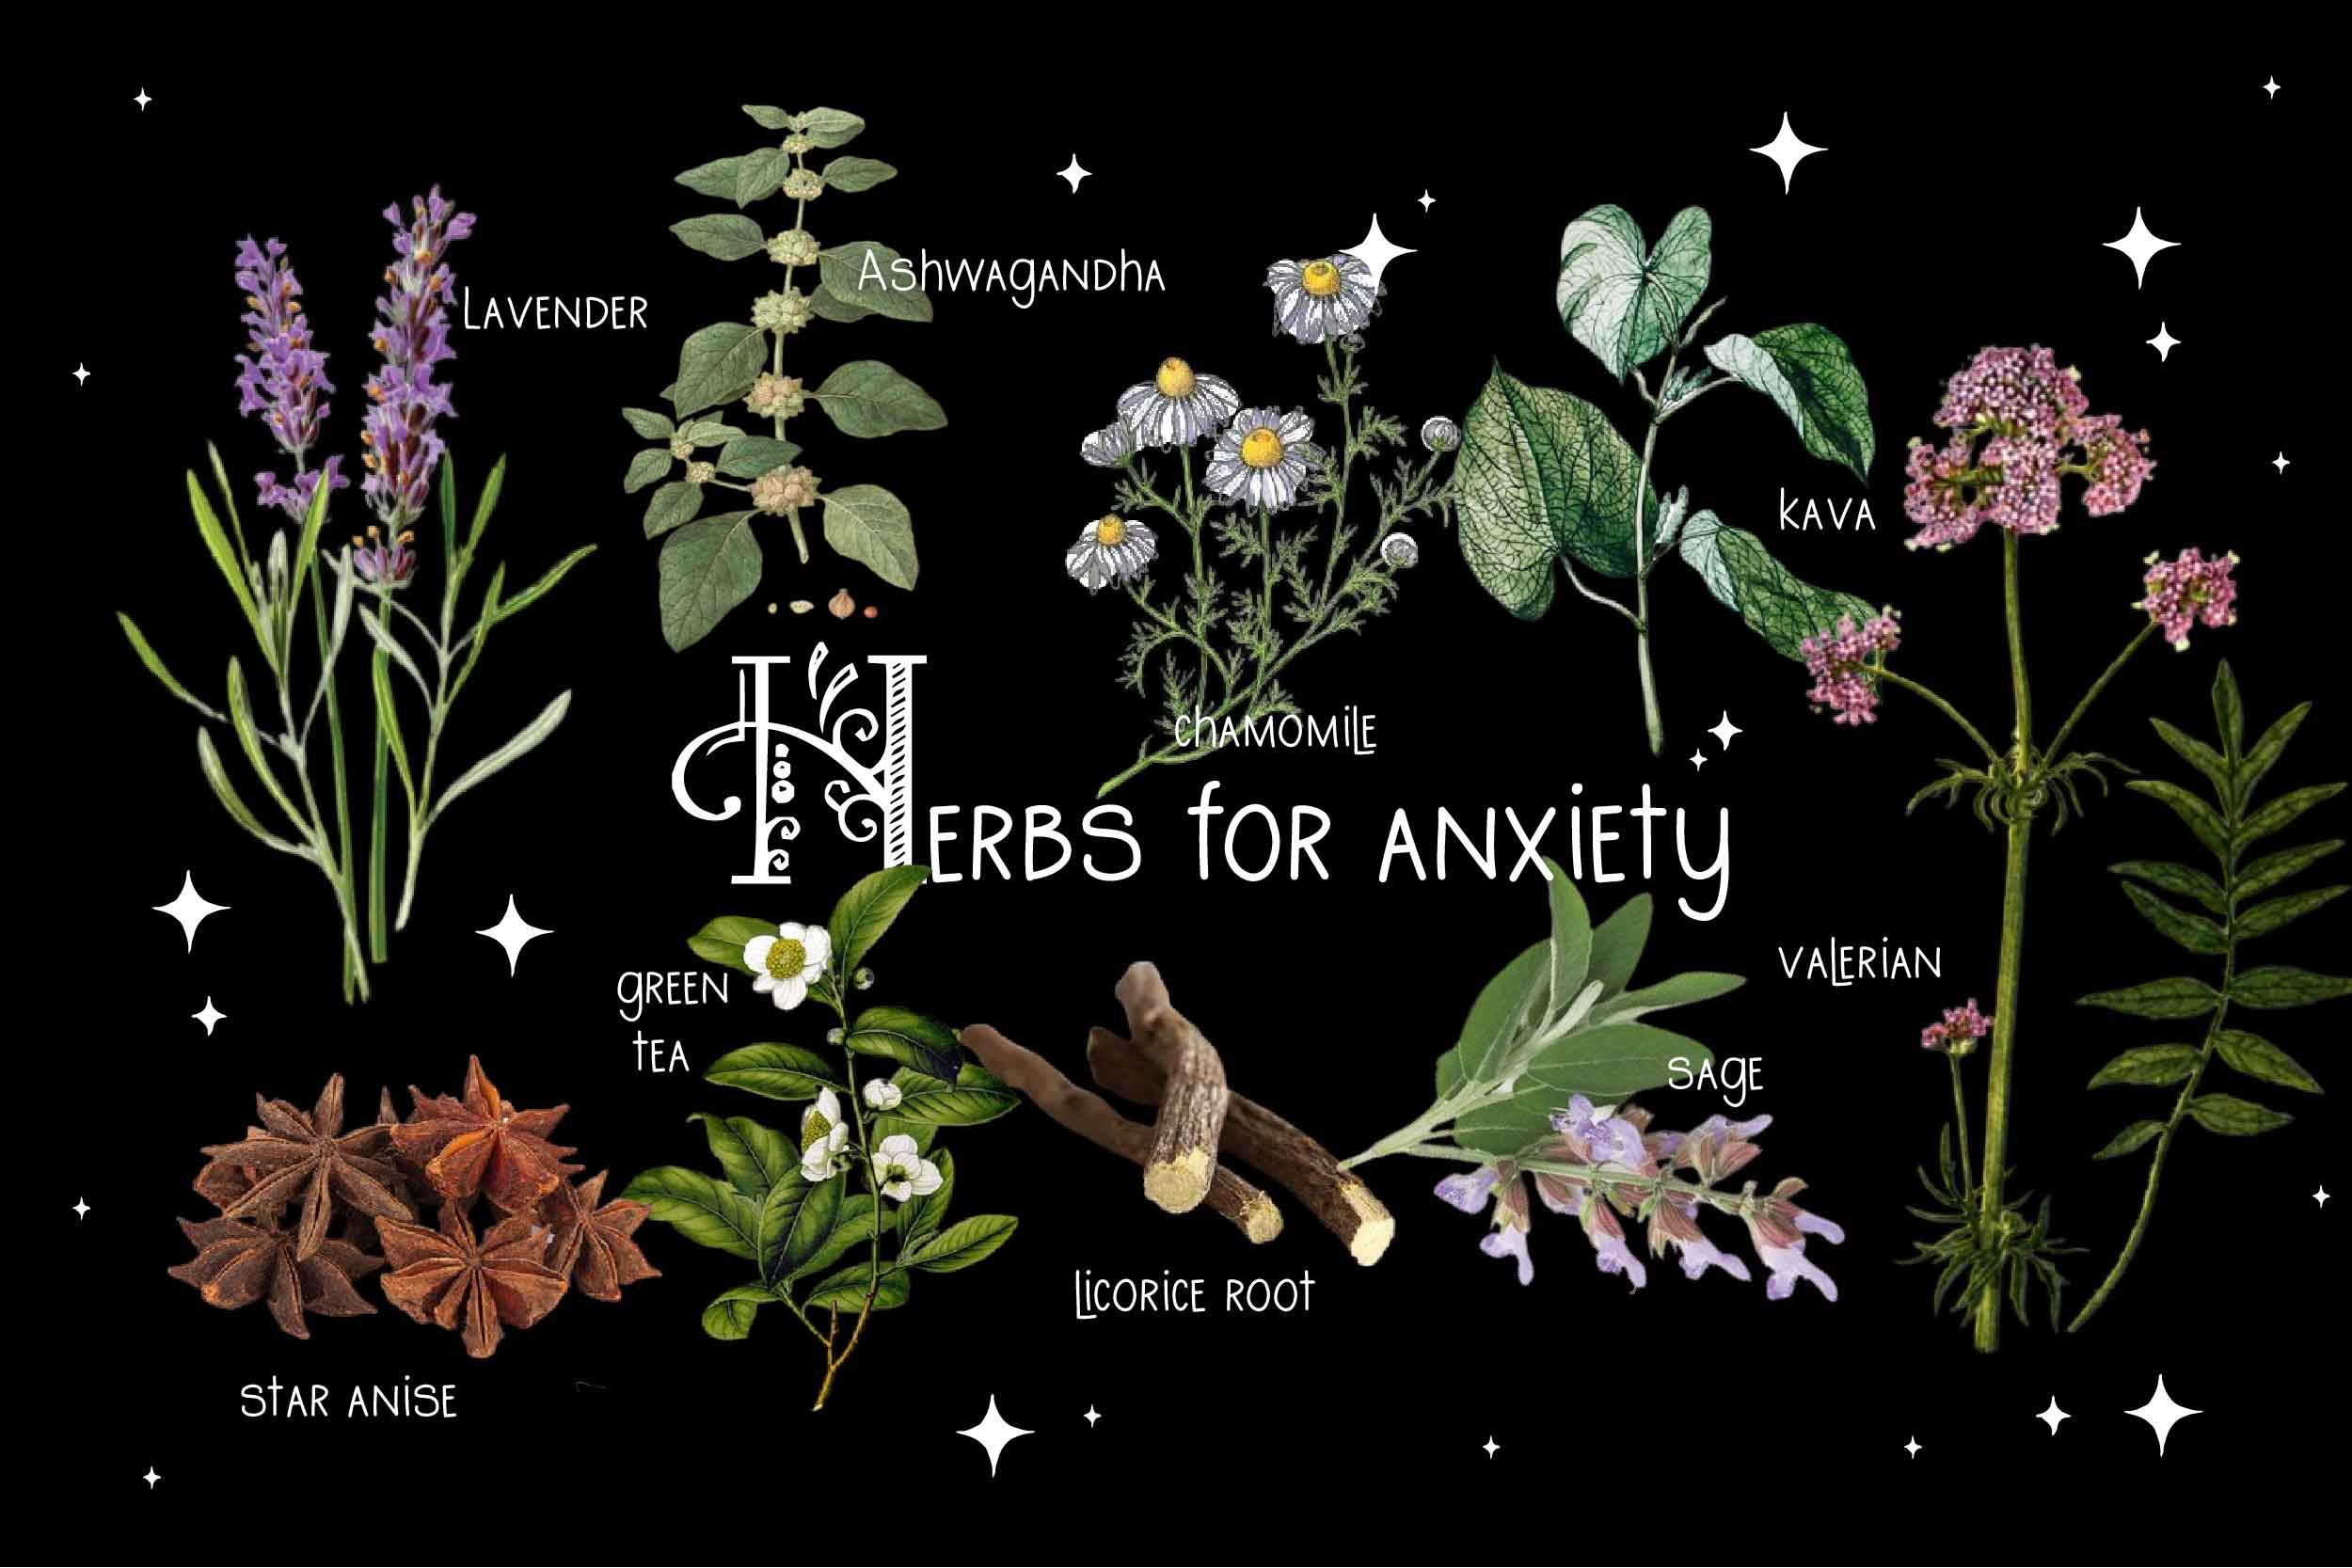 Herbs-For-Anxiety 9 herbs on black background